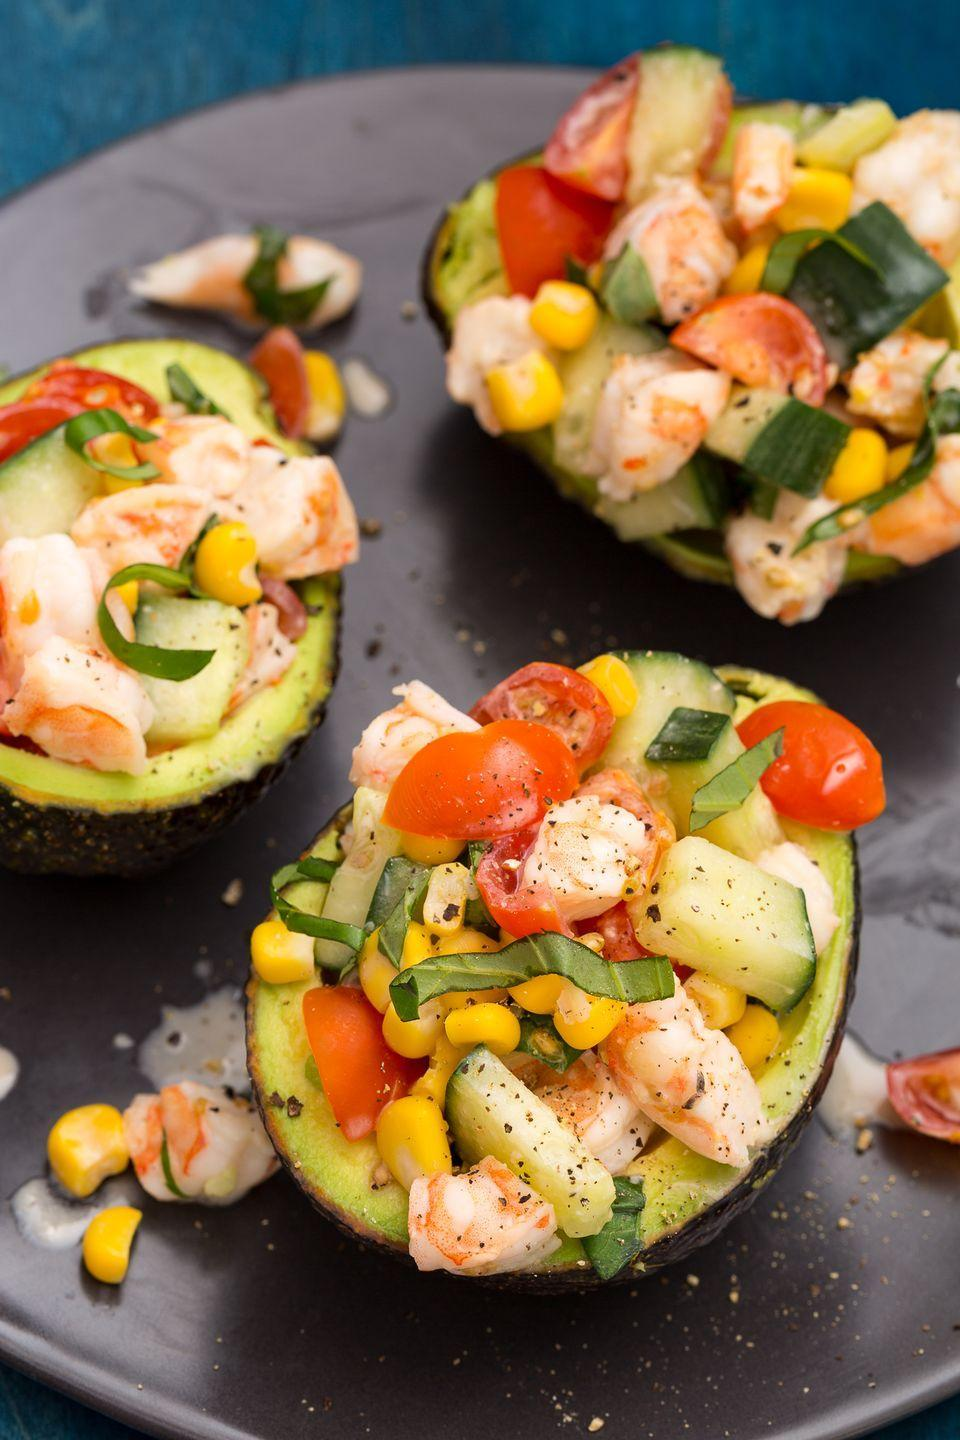 "<p>For a salty punch, top these babies off with crumbled feta. You deserve it.</p><p>Get the recipe from <a href=""https://www.delish.com/cooking/recipe-ideas/recipes/a47066/shrimp-salad-stuffed-avocado-recipe/"" rel=""nofollow noopener"" target=""_blank"" data-ylk=""slk:Delish"" class=""link rapid-noclick-resp"">Delish</a>.</p>"